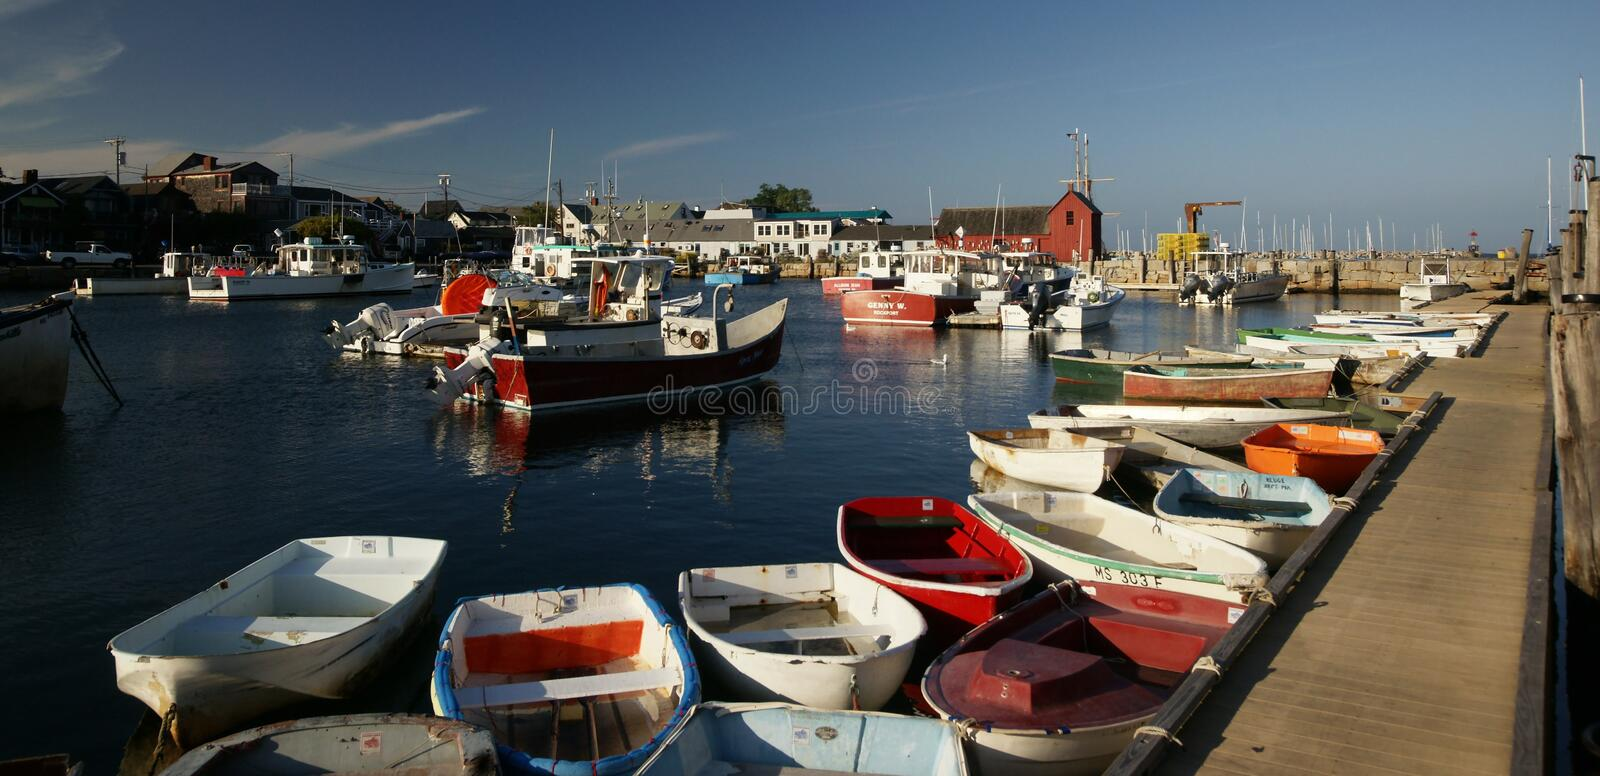 Rockport, MA Editorial Stock Image